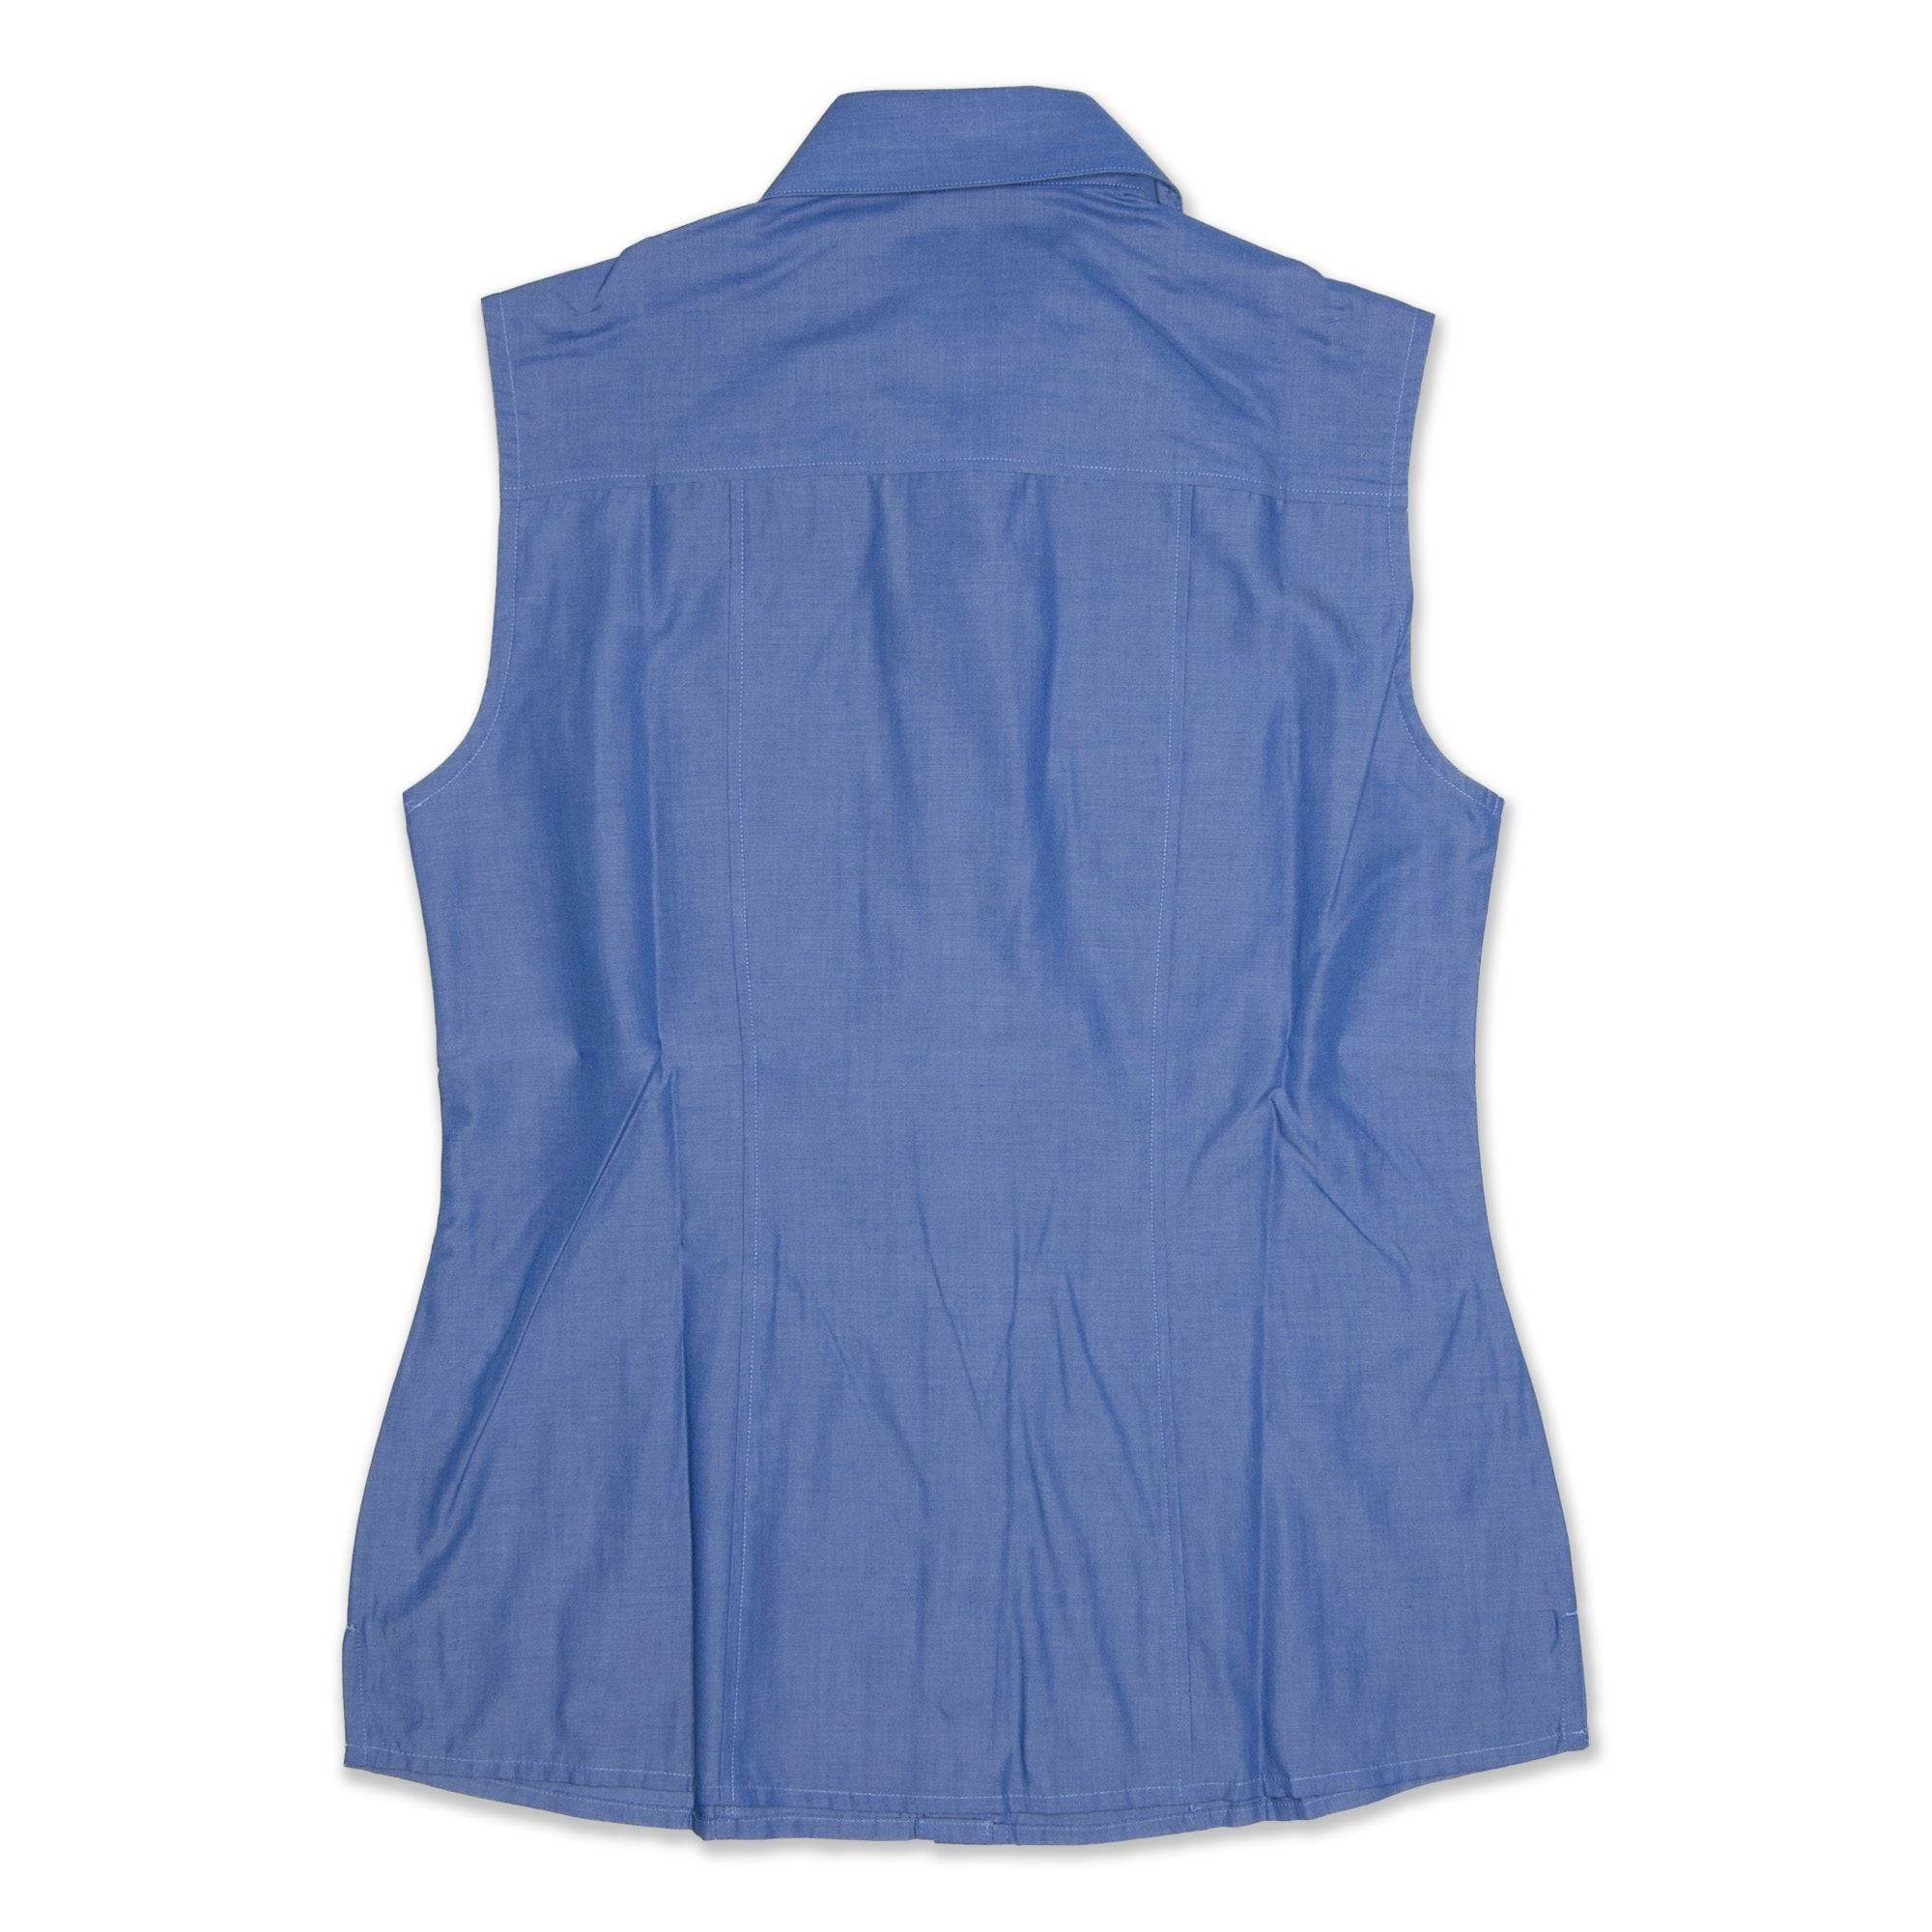 StyleCorp Sleeveless Shirt Women's - Blue Workwear StyleCorp